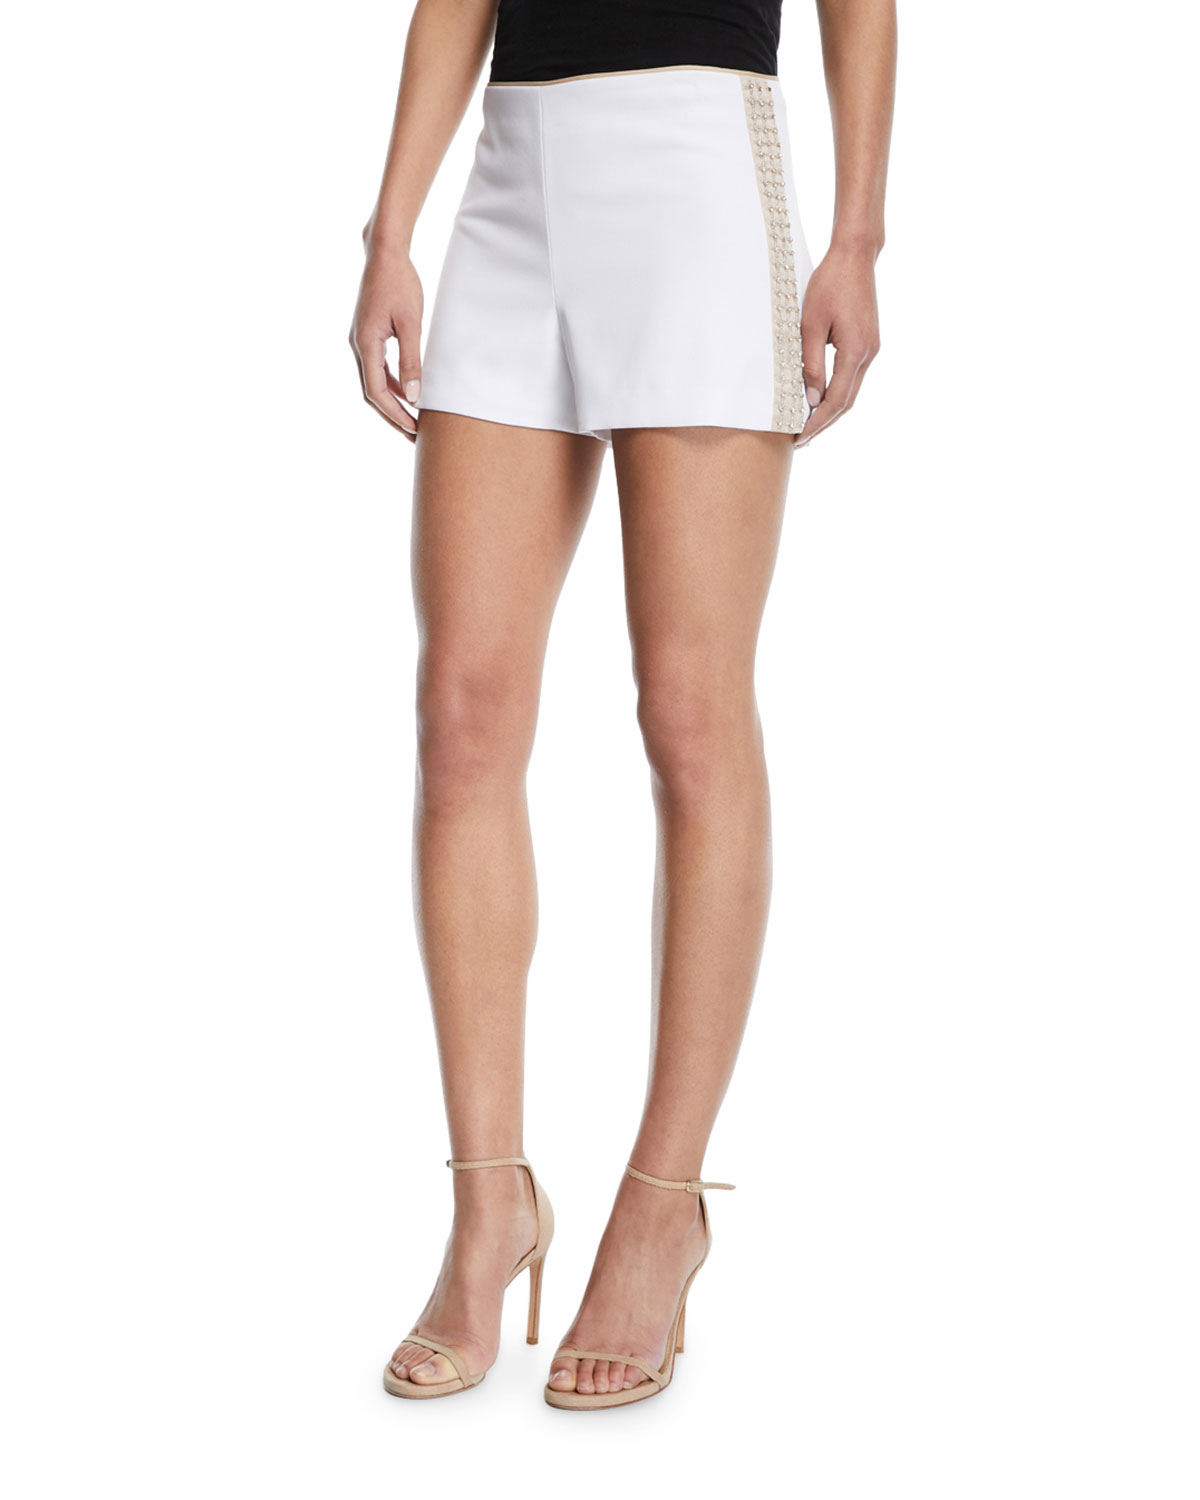 38c8d9a831c3 Alice + Olivia Sherri Embellished Back-Zip Shorts